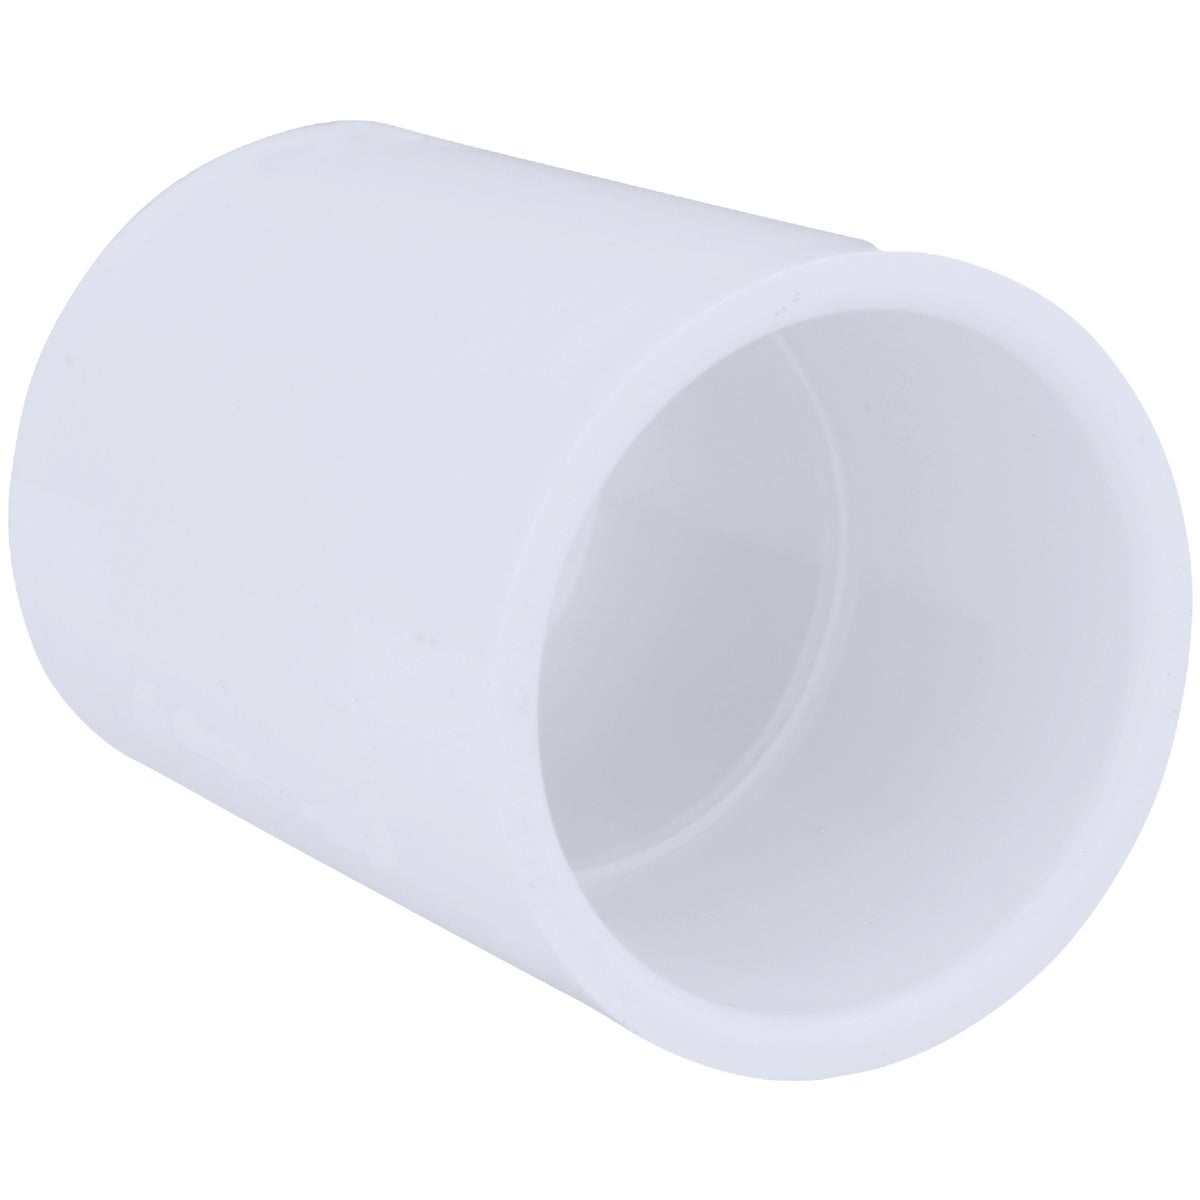 "1-1/4"" SCH40 PVC CPLG - 30114 by Genova Inc"